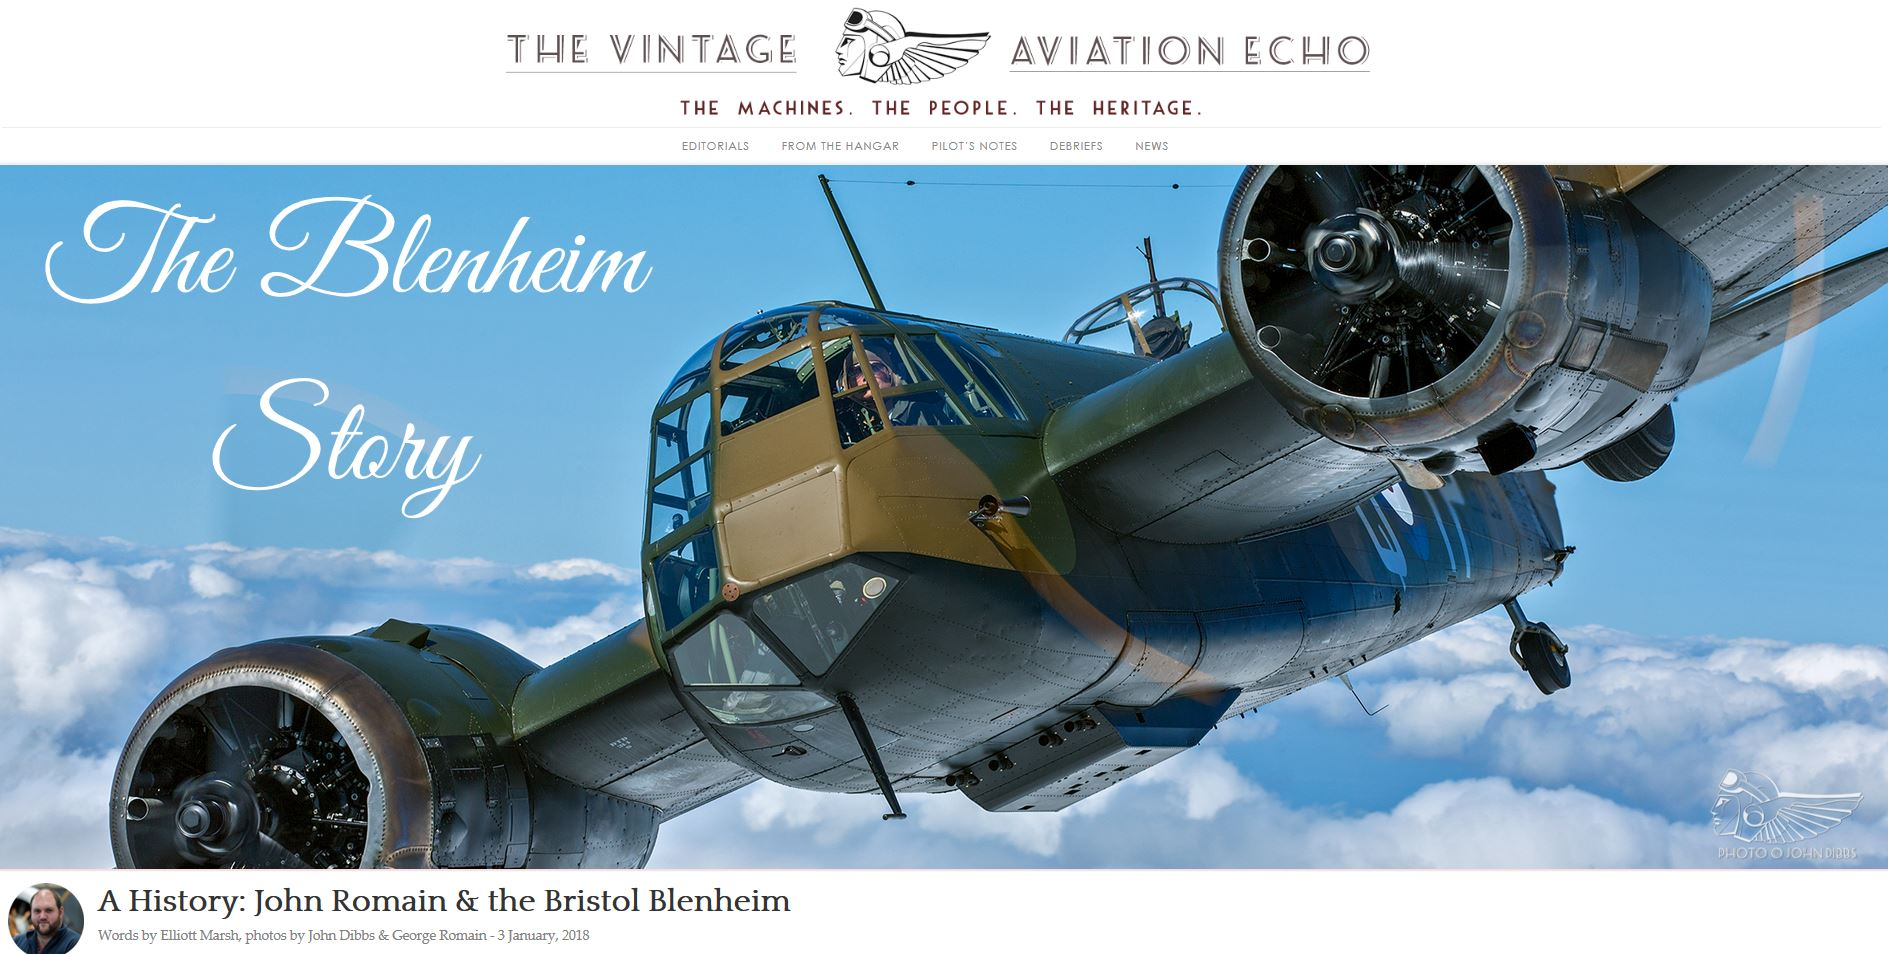 Vintage Aviation Echo